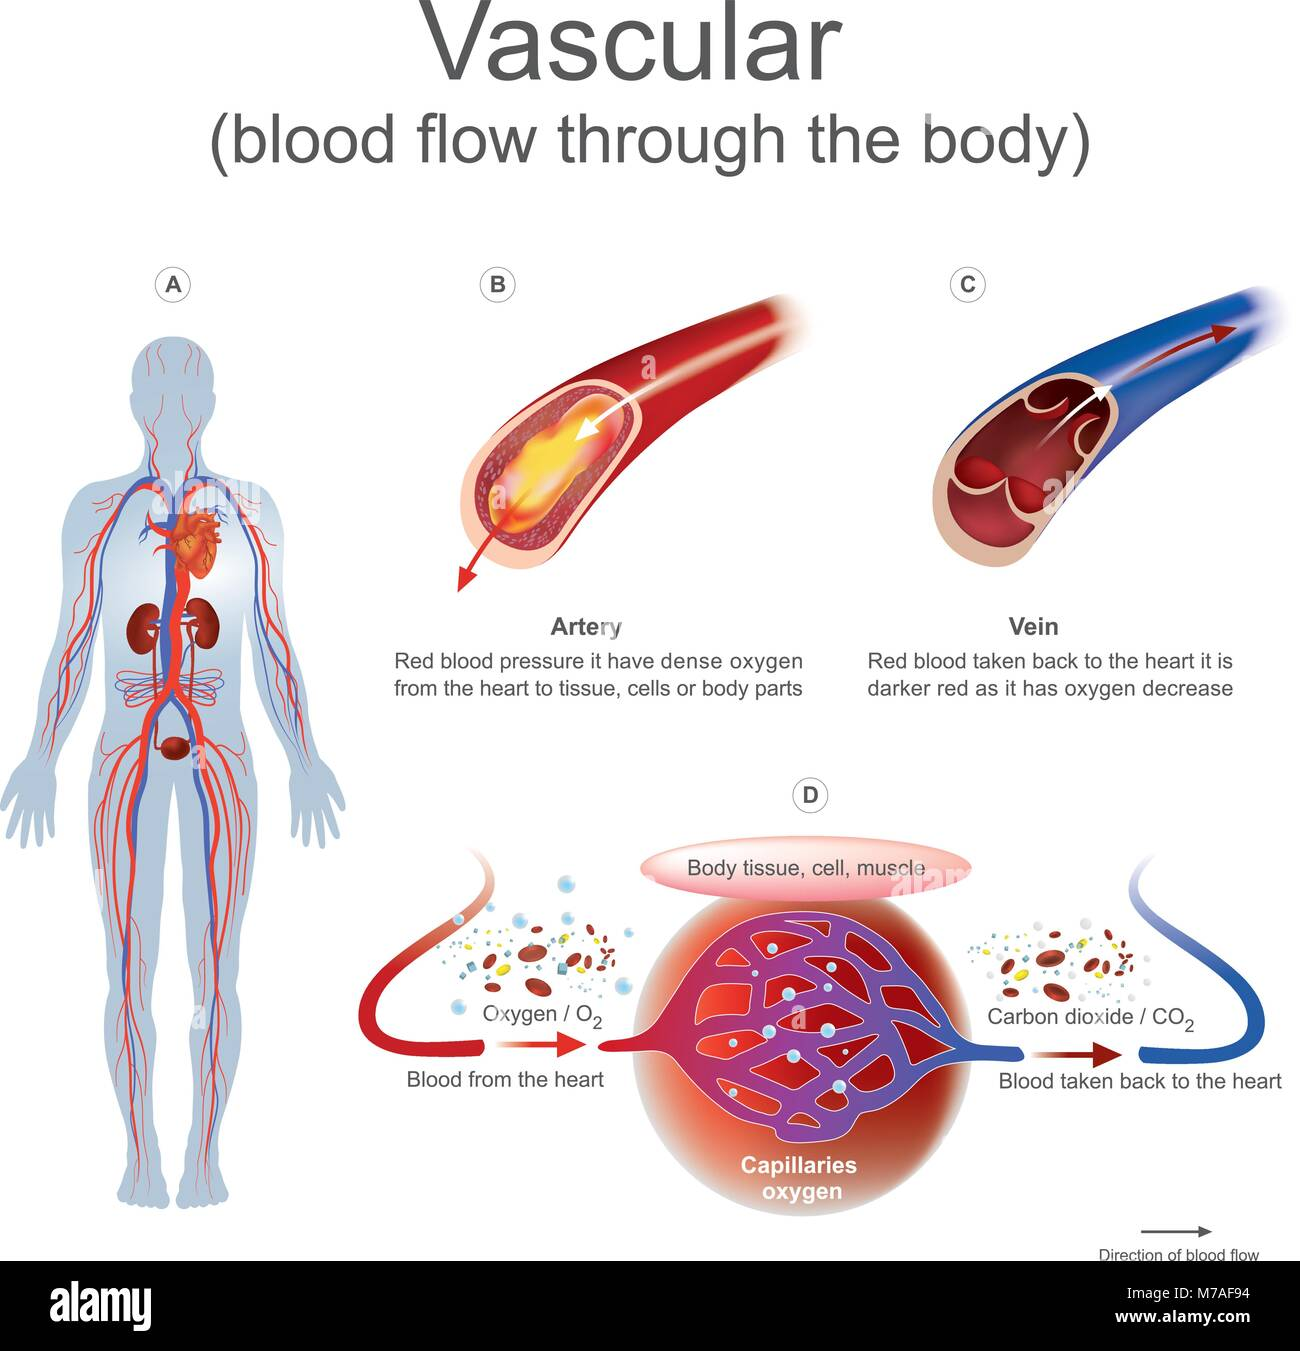 Red Blood Pressure It Have Dense Oxygen From The Heart To Tissue Human White Cell Diagram Cells Overview Stock Or Body Parts Taken Back Is Darker As Has Ox